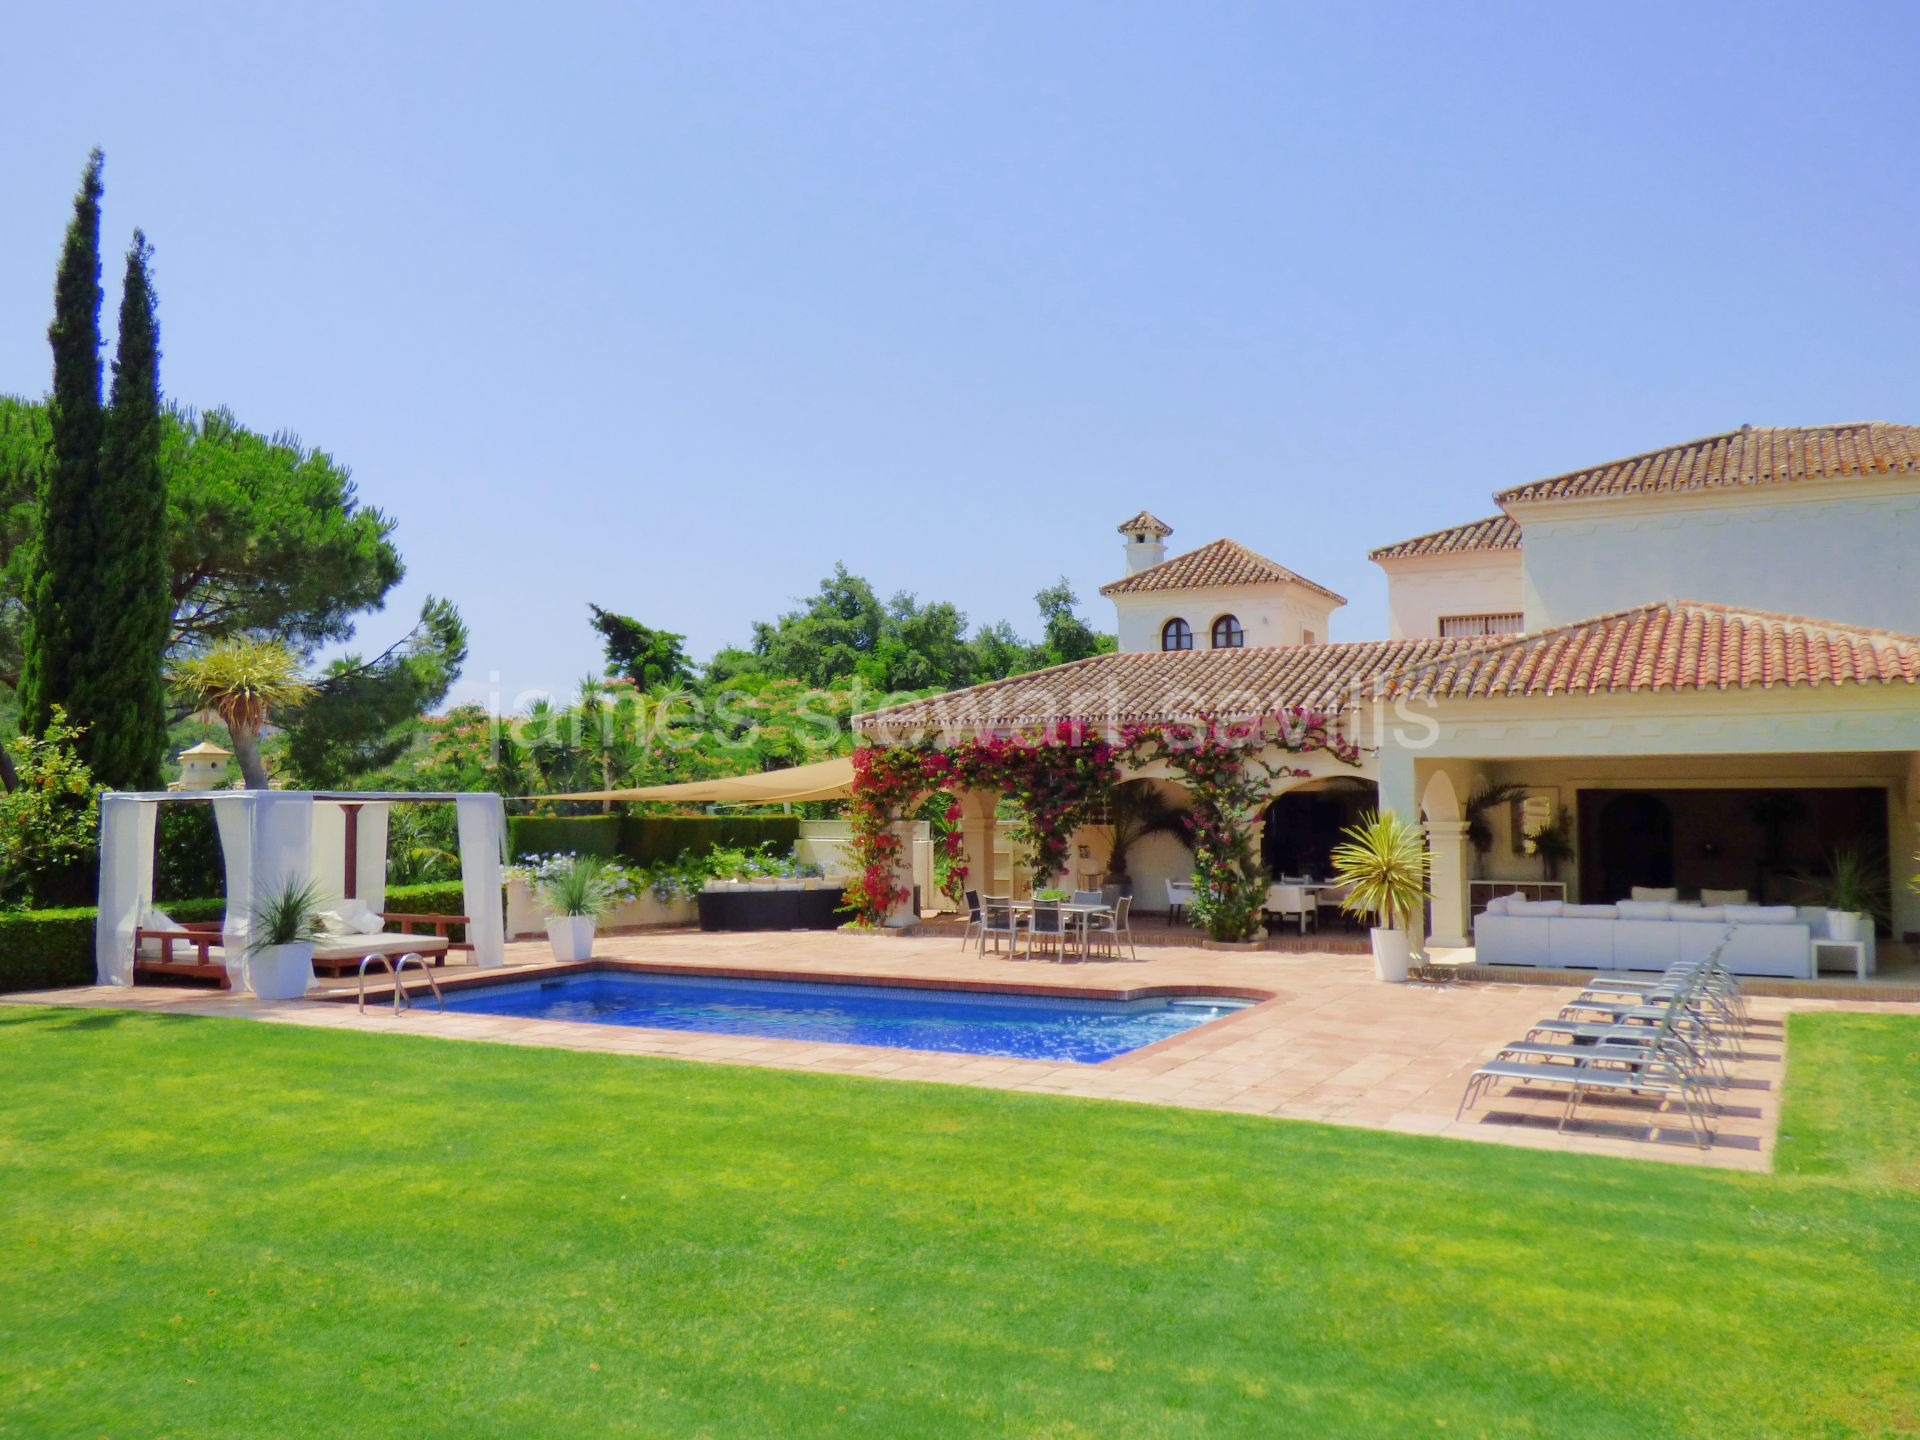 EXCLUSIVE - Spacious villa in a mature area with a beautiful outdoor area